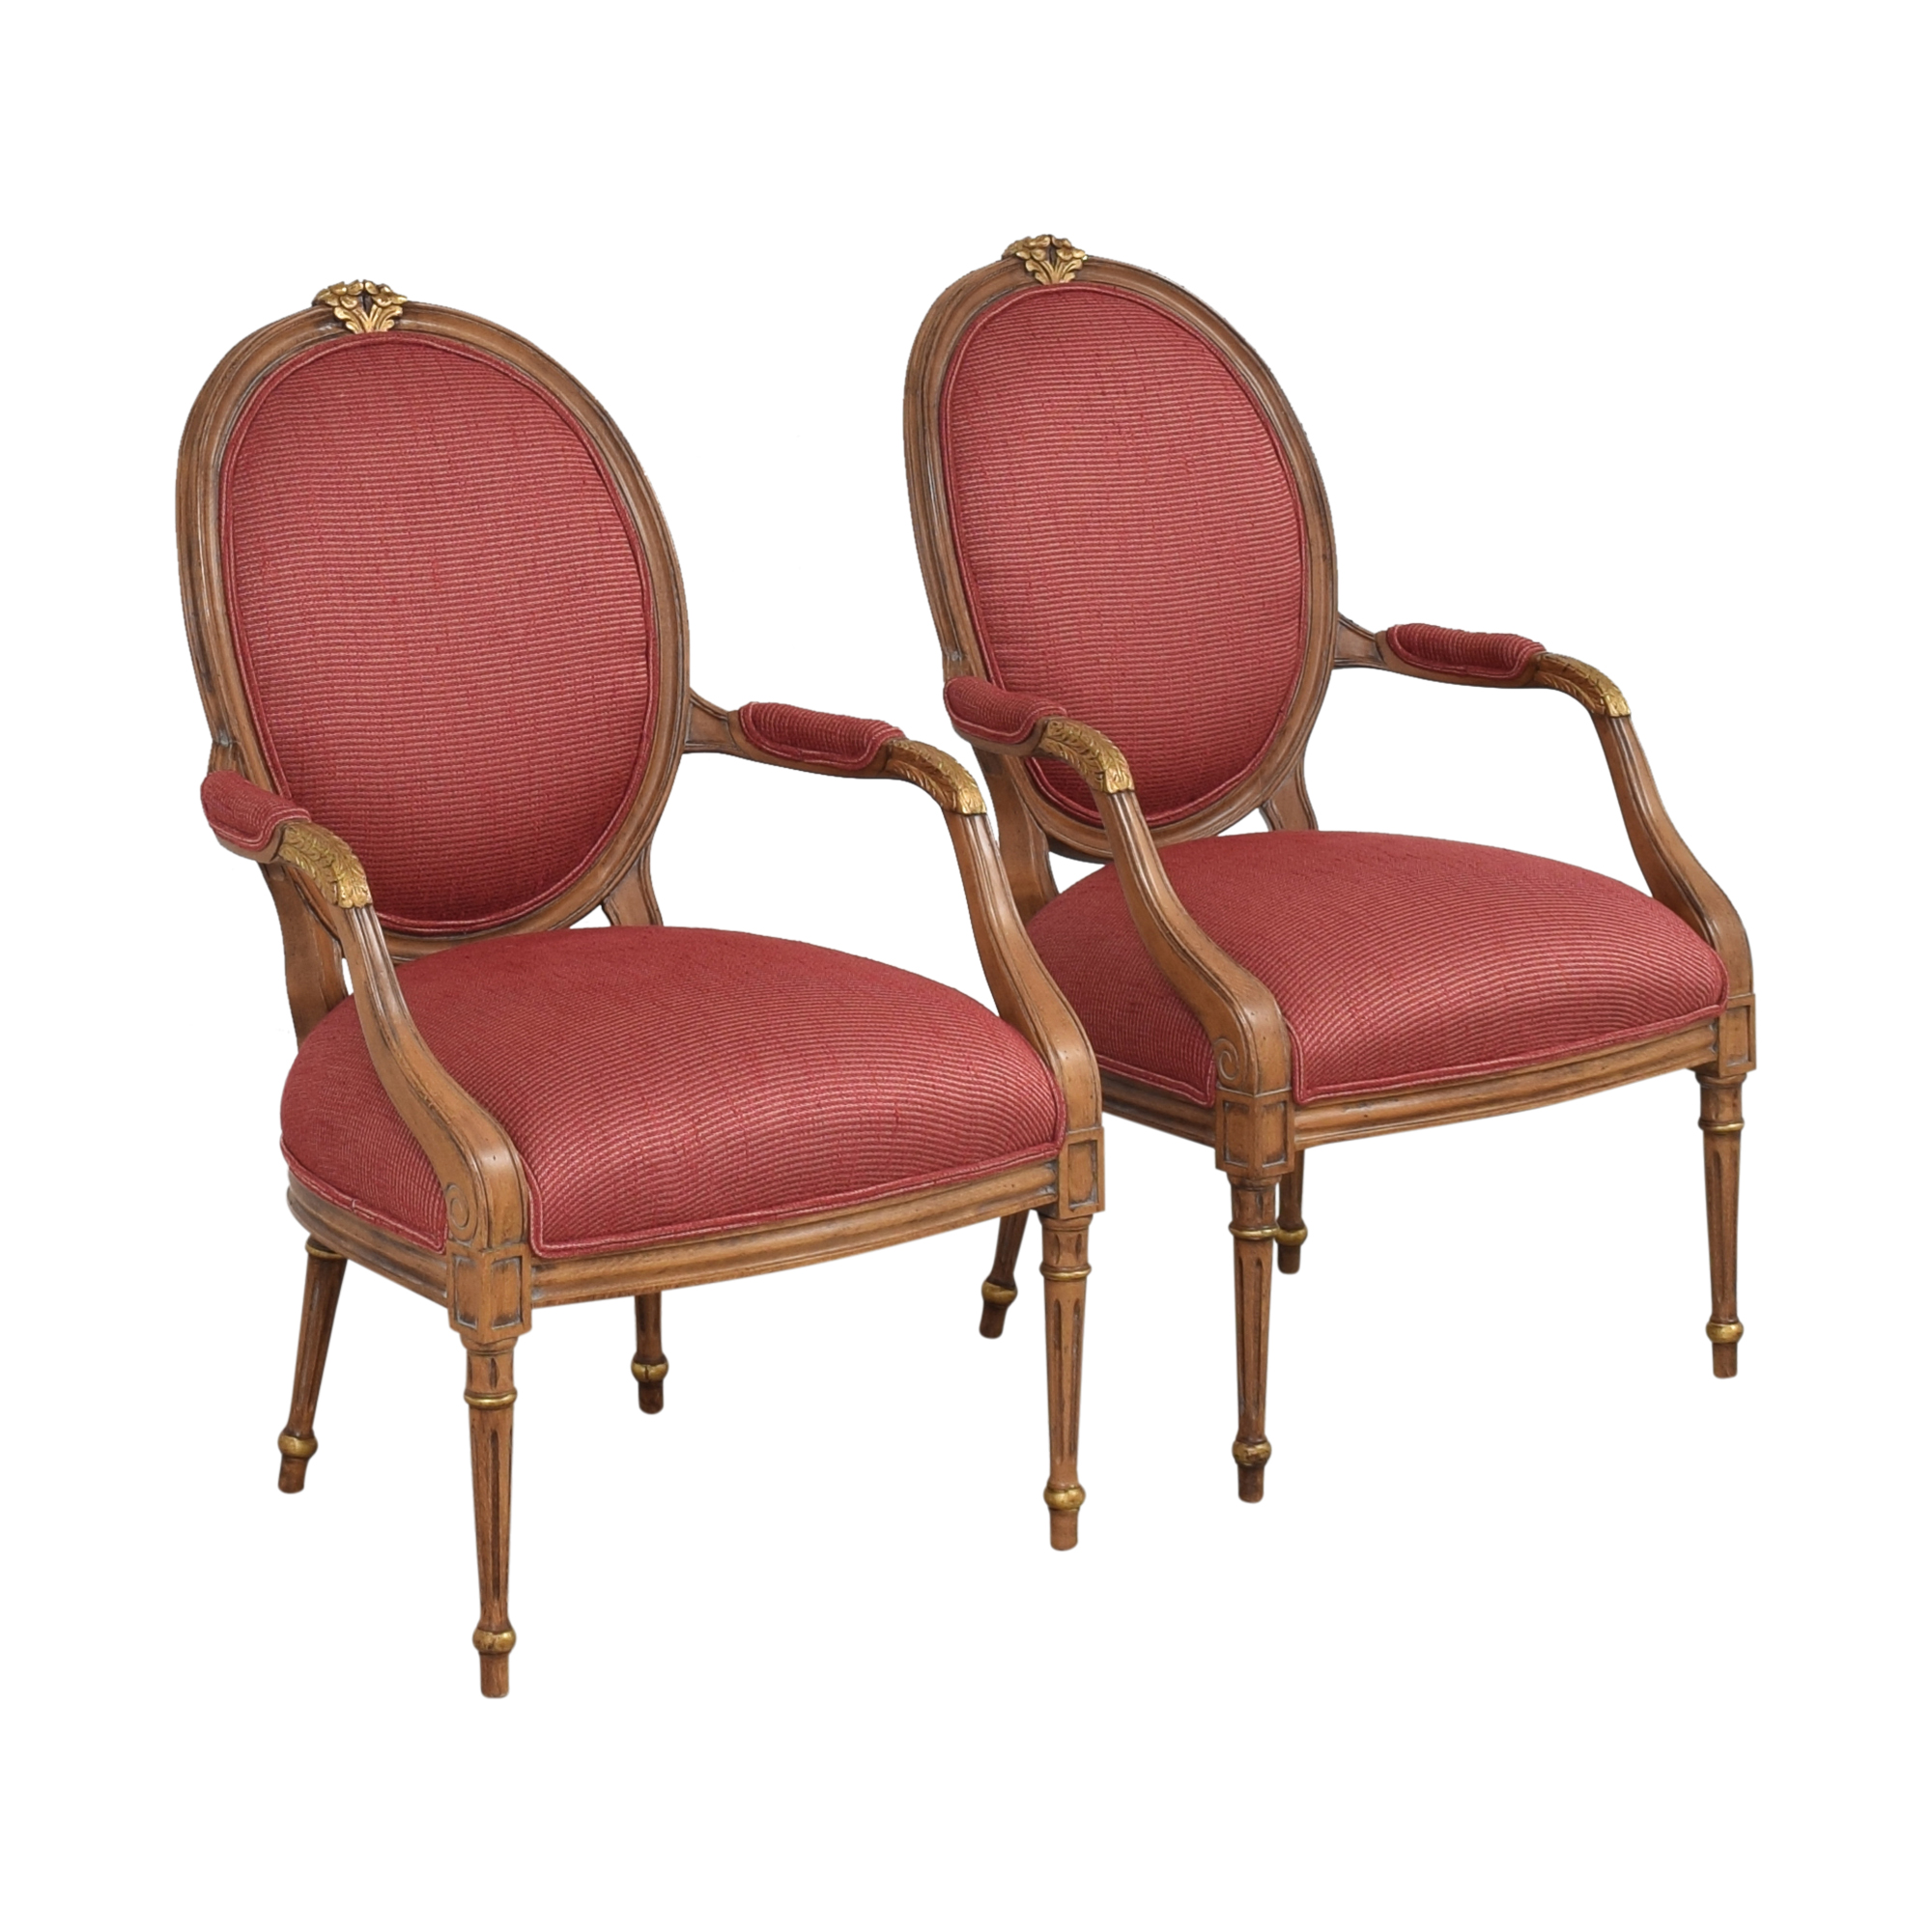 French Regency Upholstered Arm Chairs sale